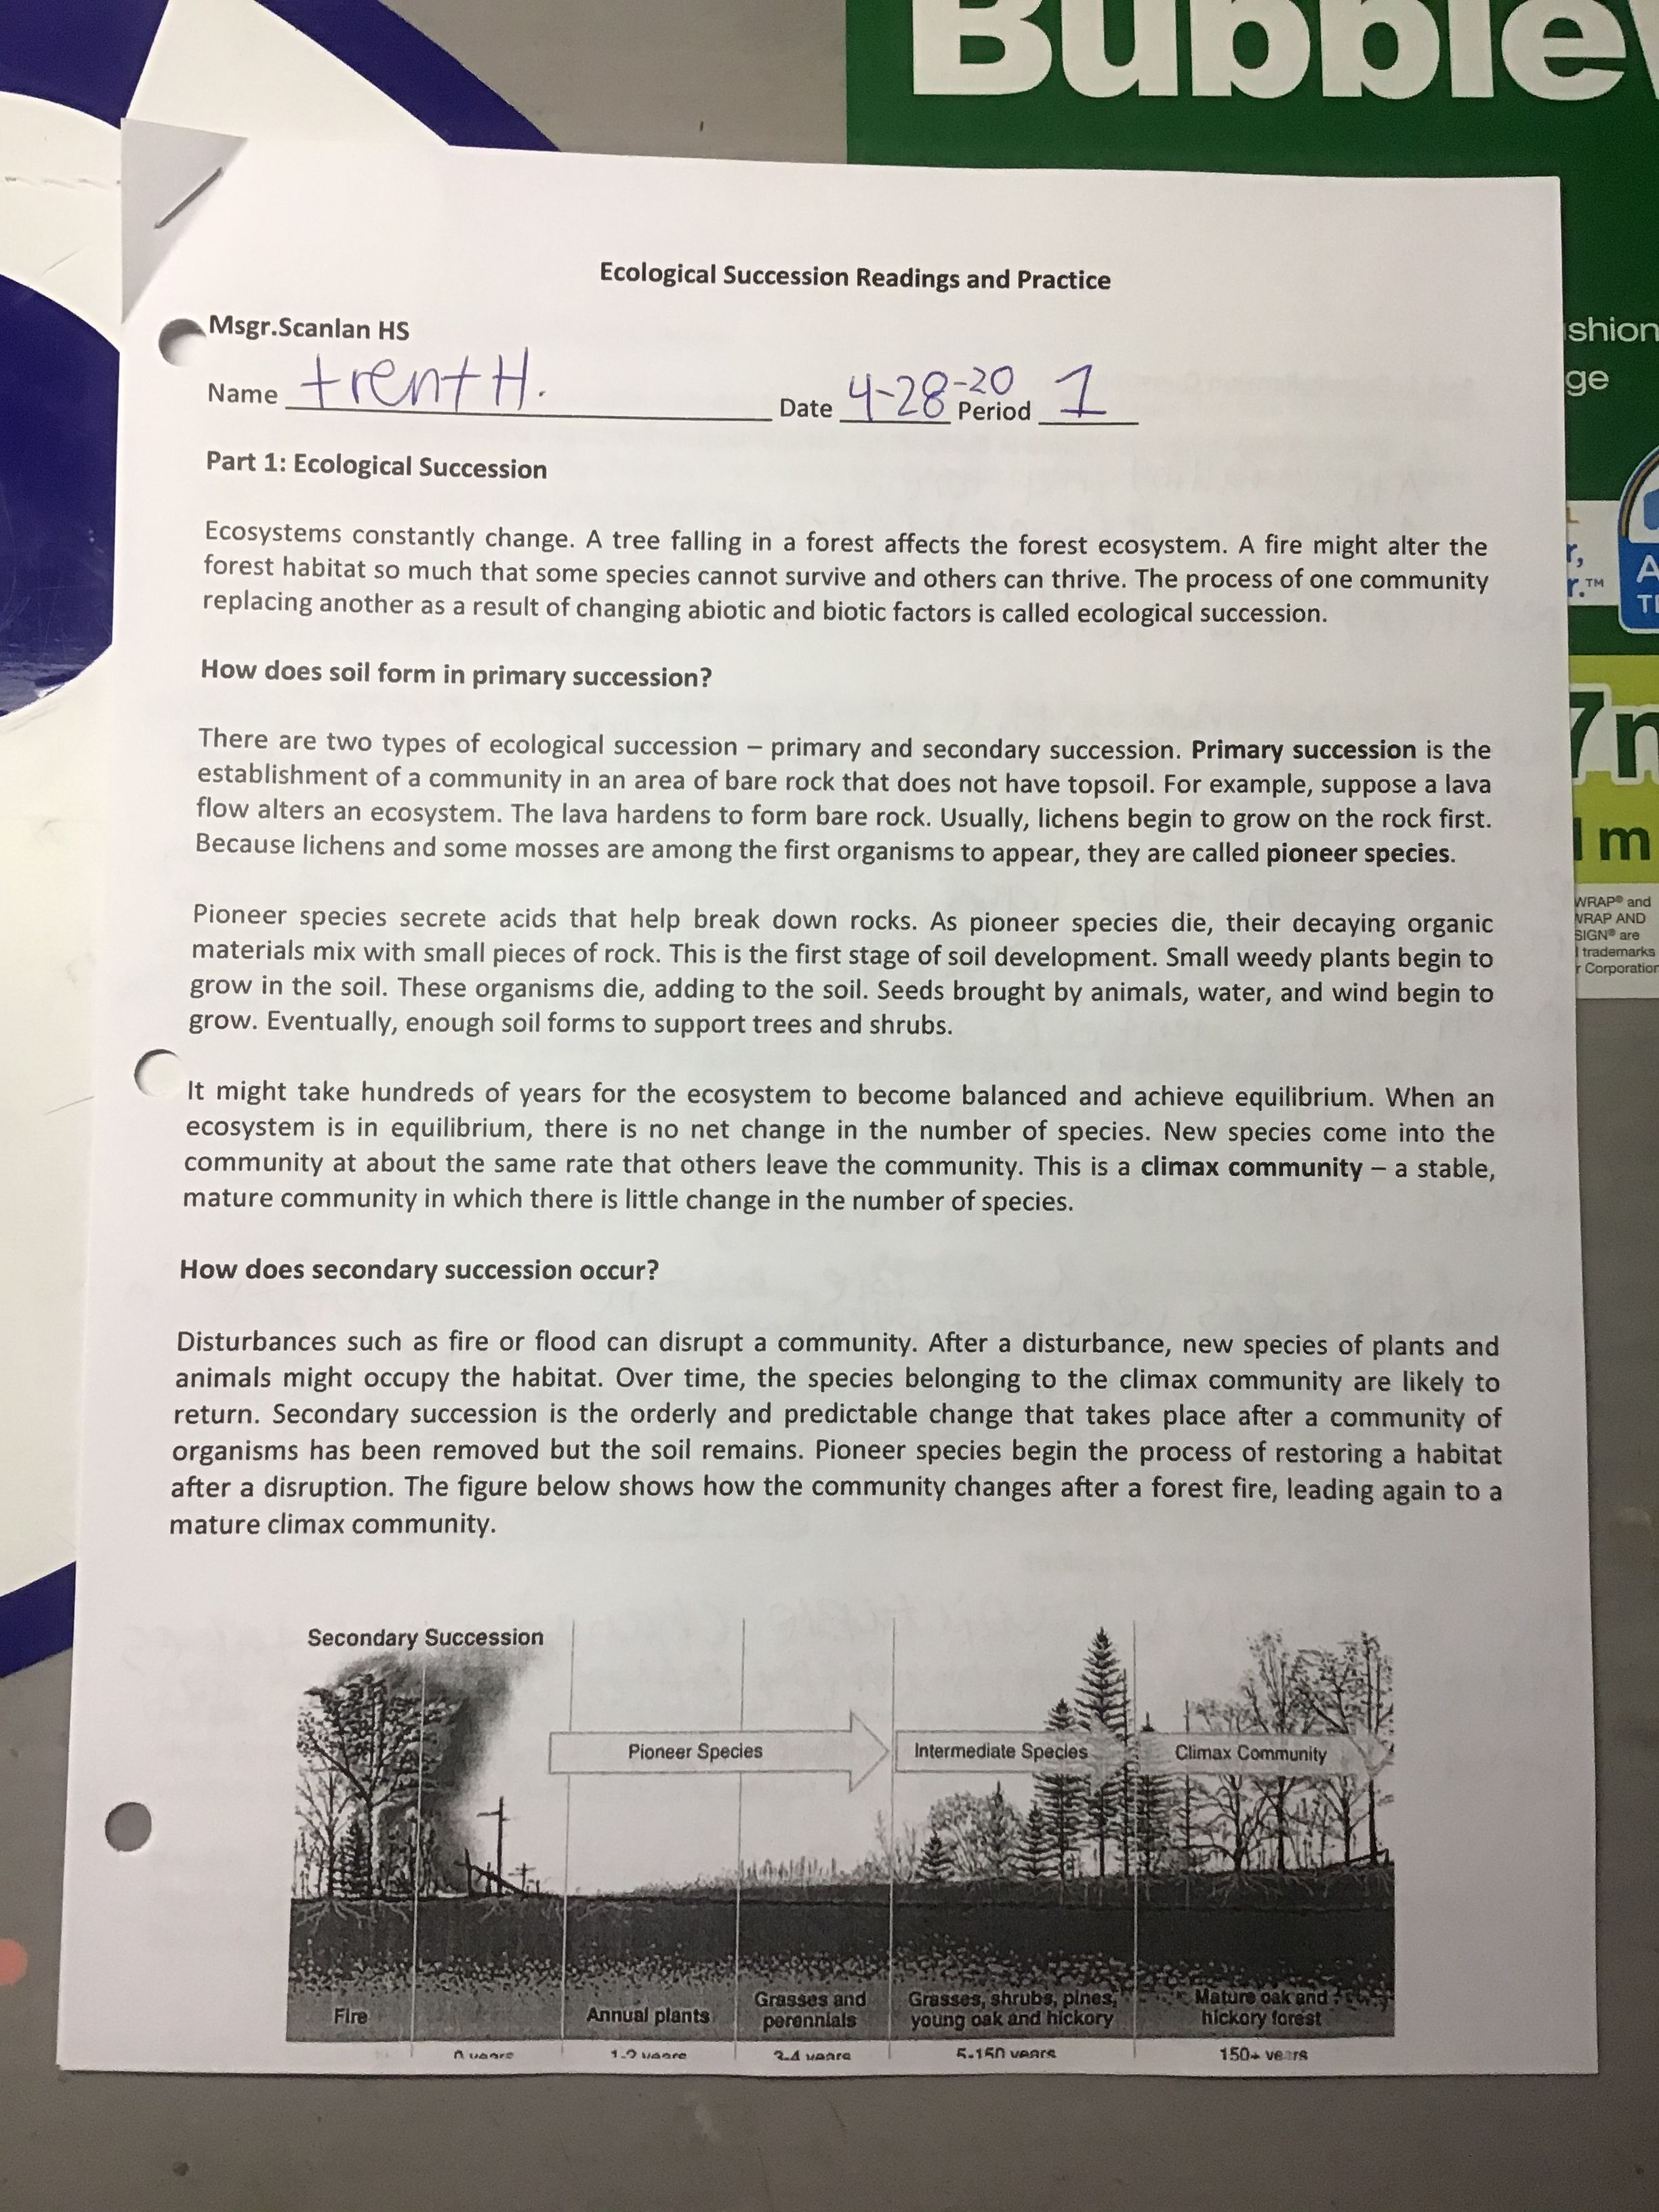 Ecological Succession Readings Practice Page 1 4 28 20 Reading Practice Ecological Succession Reading [ 3264 x 2448 Pixel ]